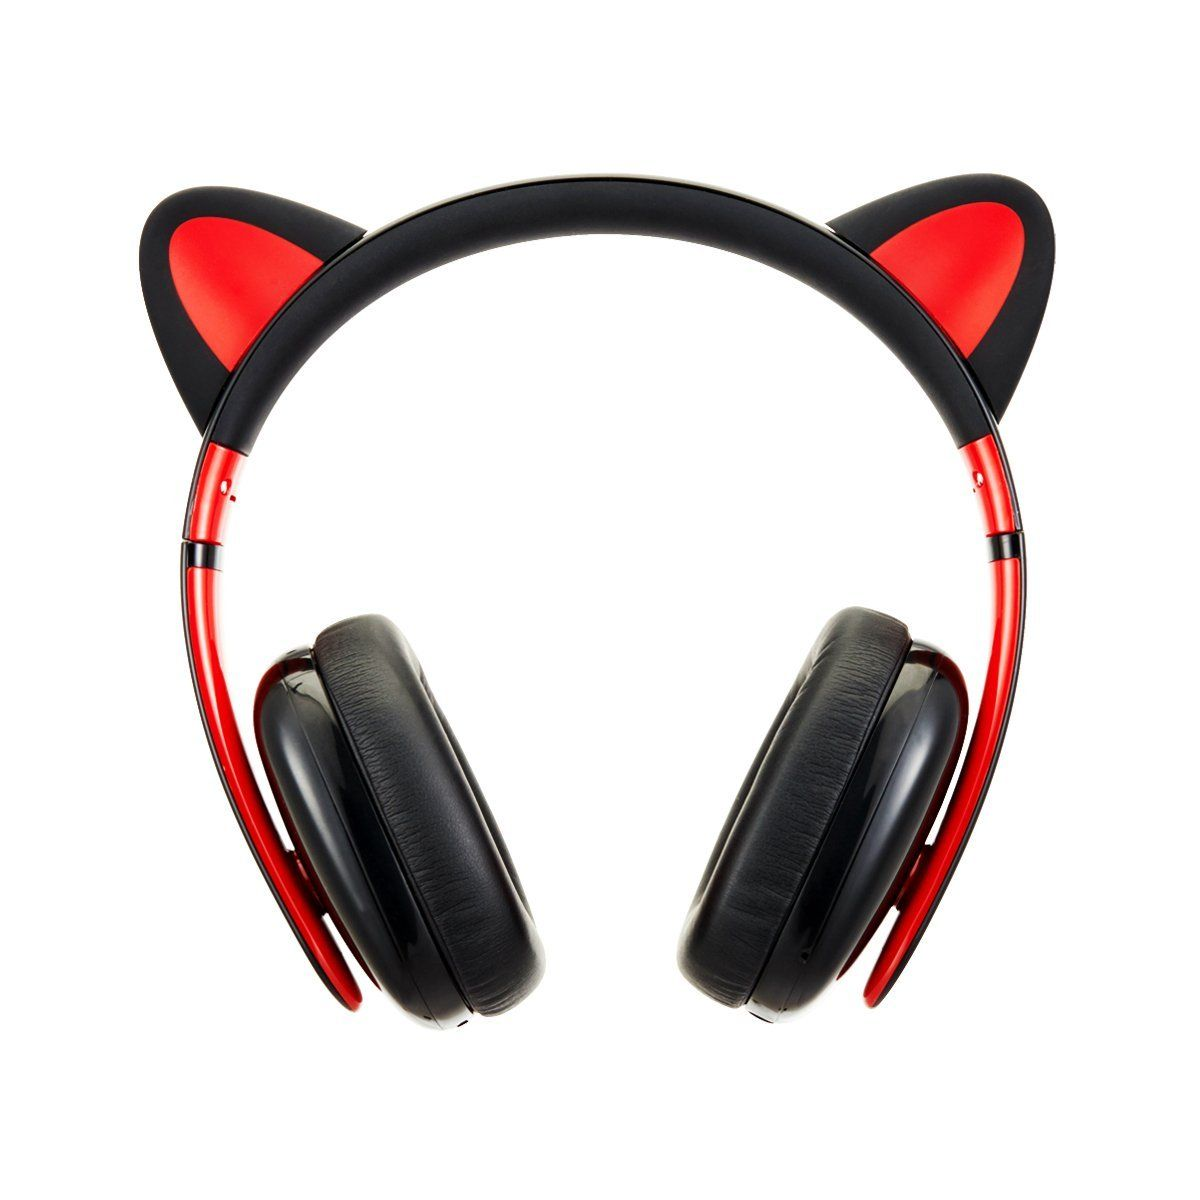 Headphones with microphone wireless - headphones red with microphone